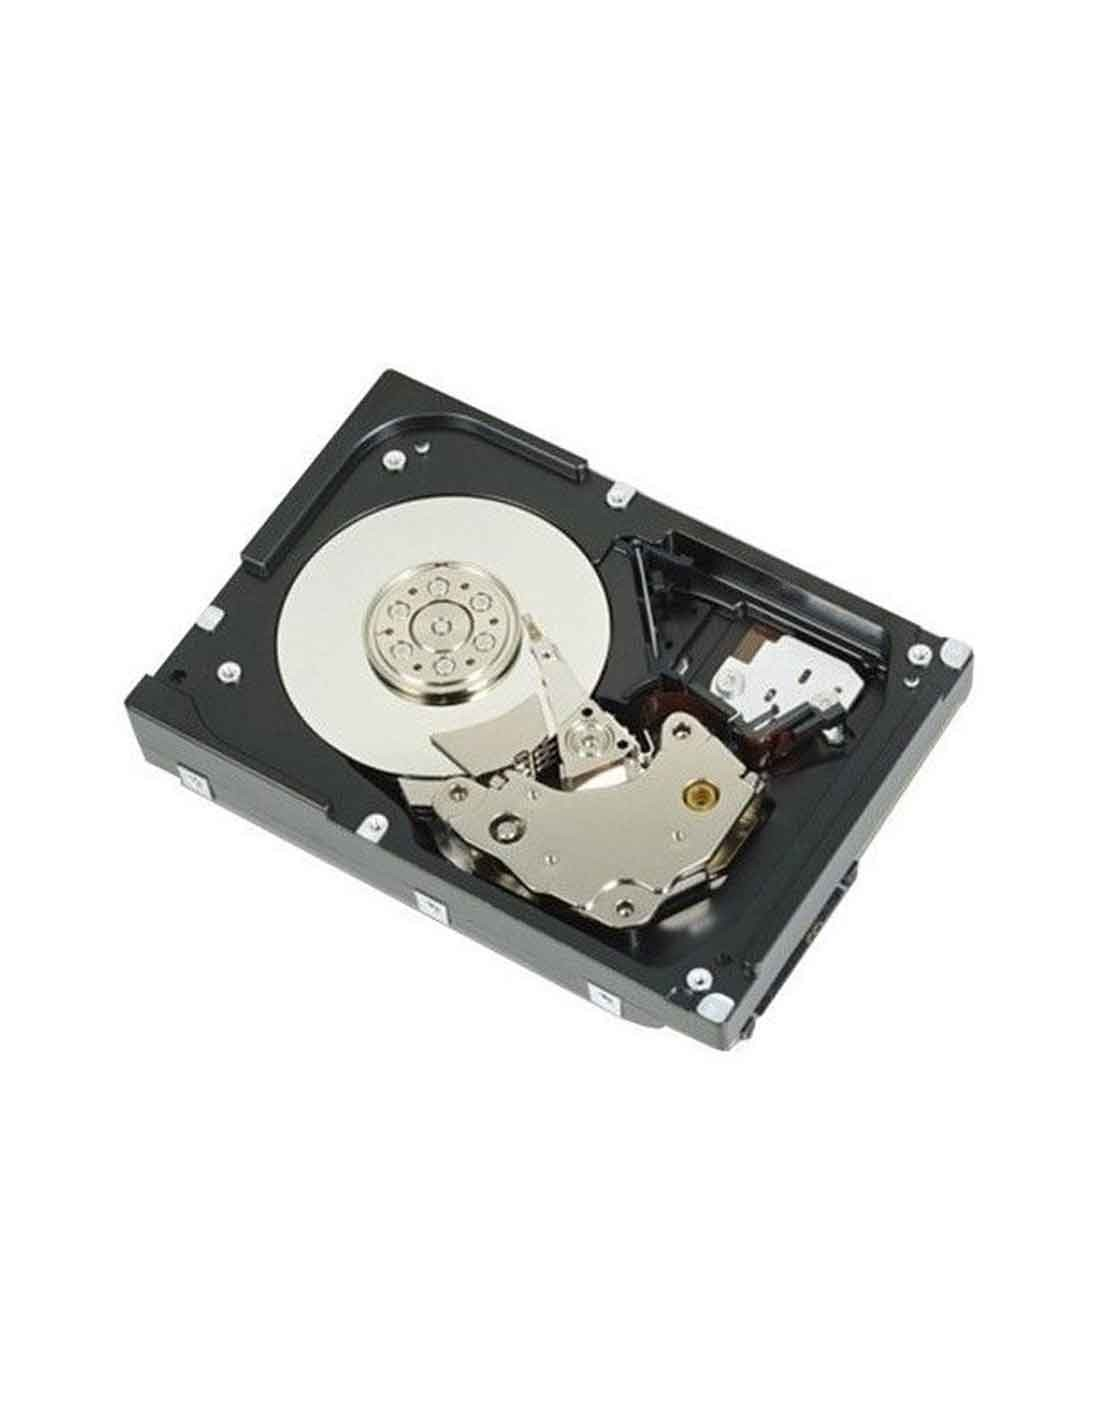 Dell 1.2 TB 10K RPM SAS 2.5in Hot-plug Hard Drive at a cheap price in UAE